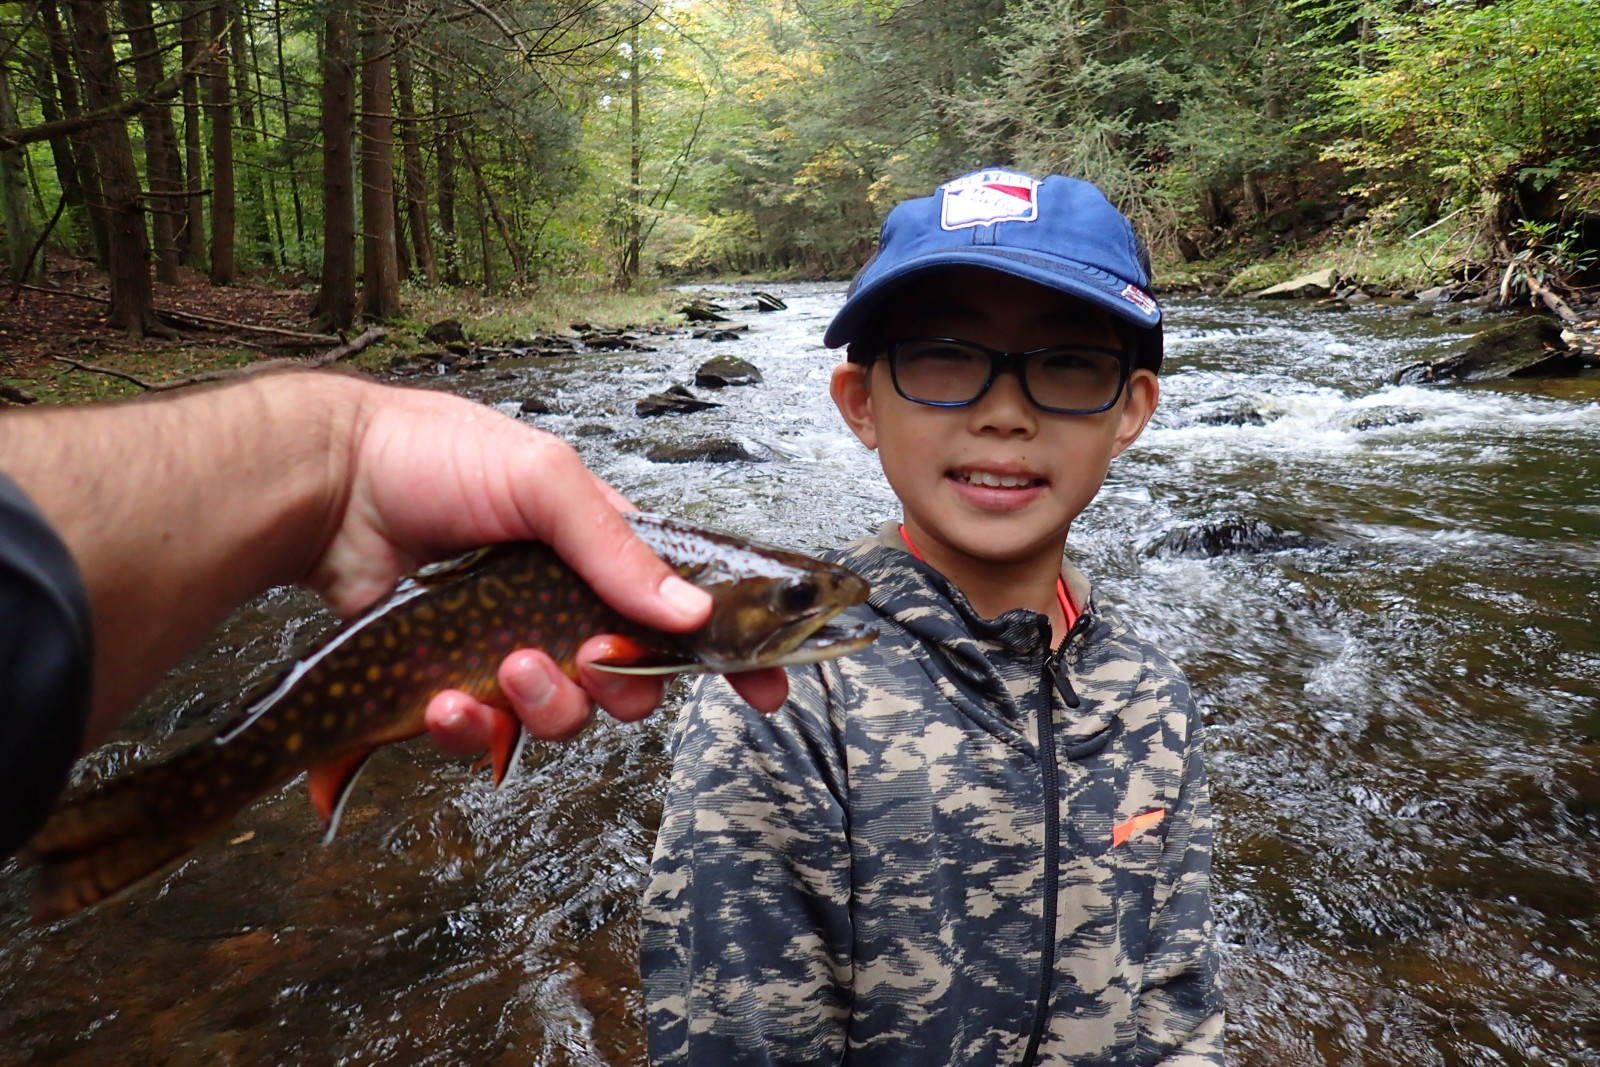 guided fly fishing trips in the pocono mountains for wild trout with filingo fly fishing